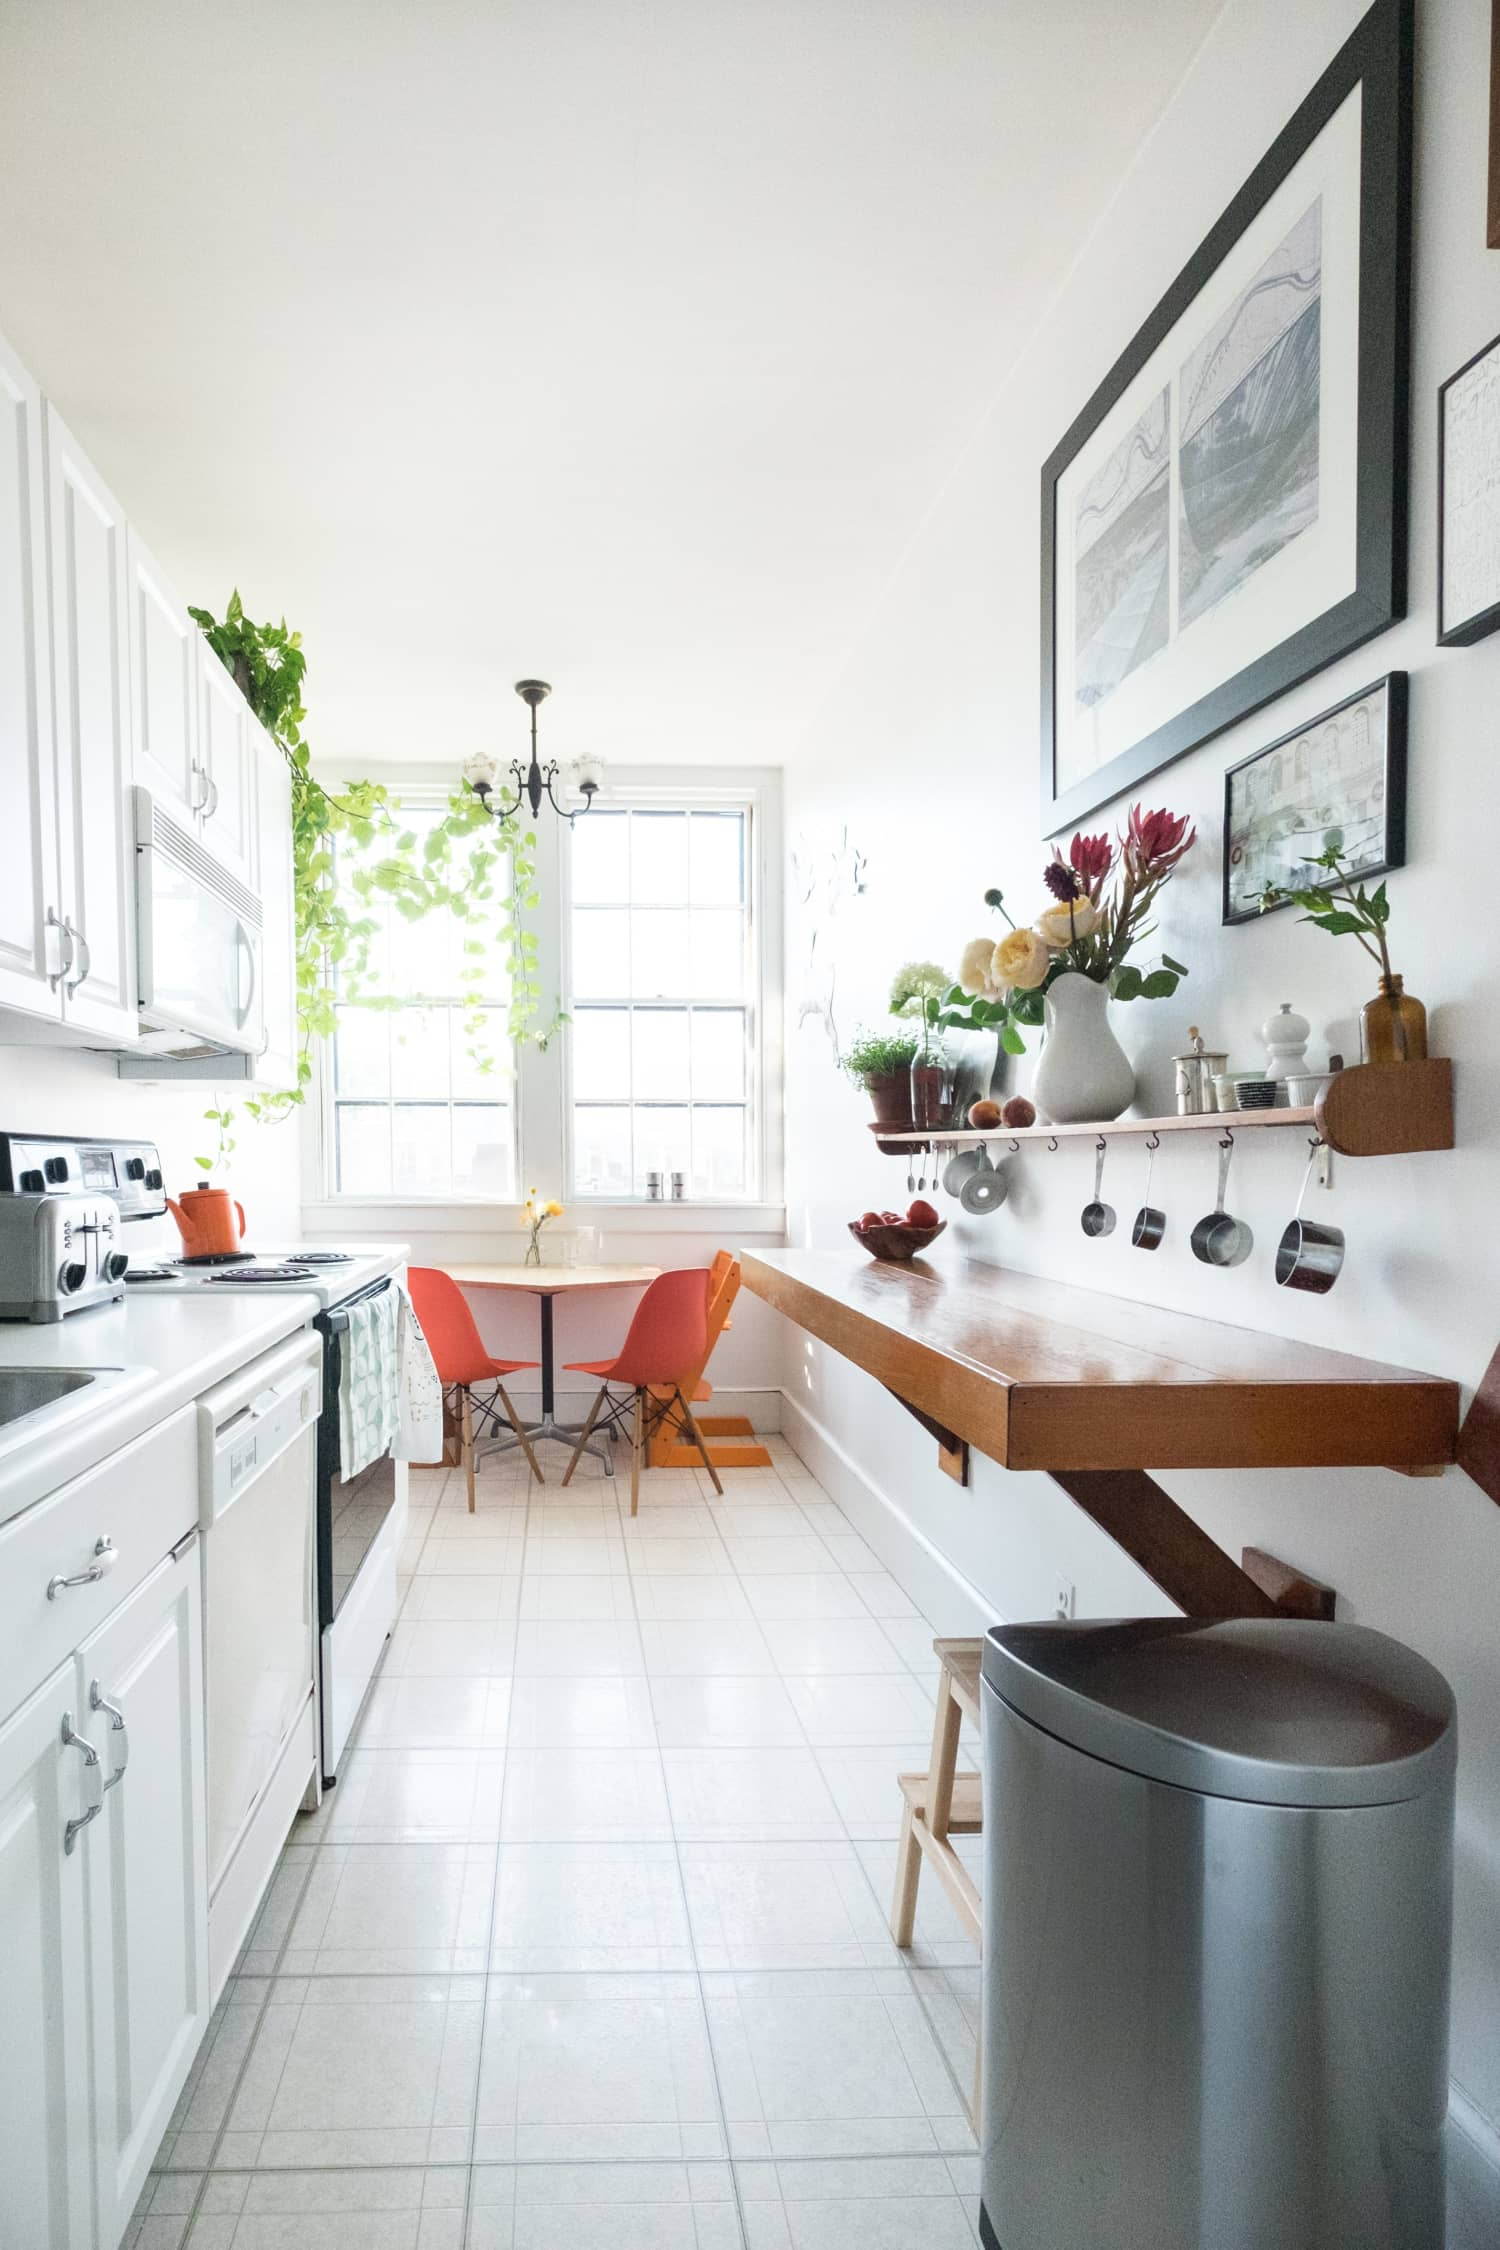 Galley Kitchen: The 5 Things I'll Miss About Cooking In A Galley Kitchen